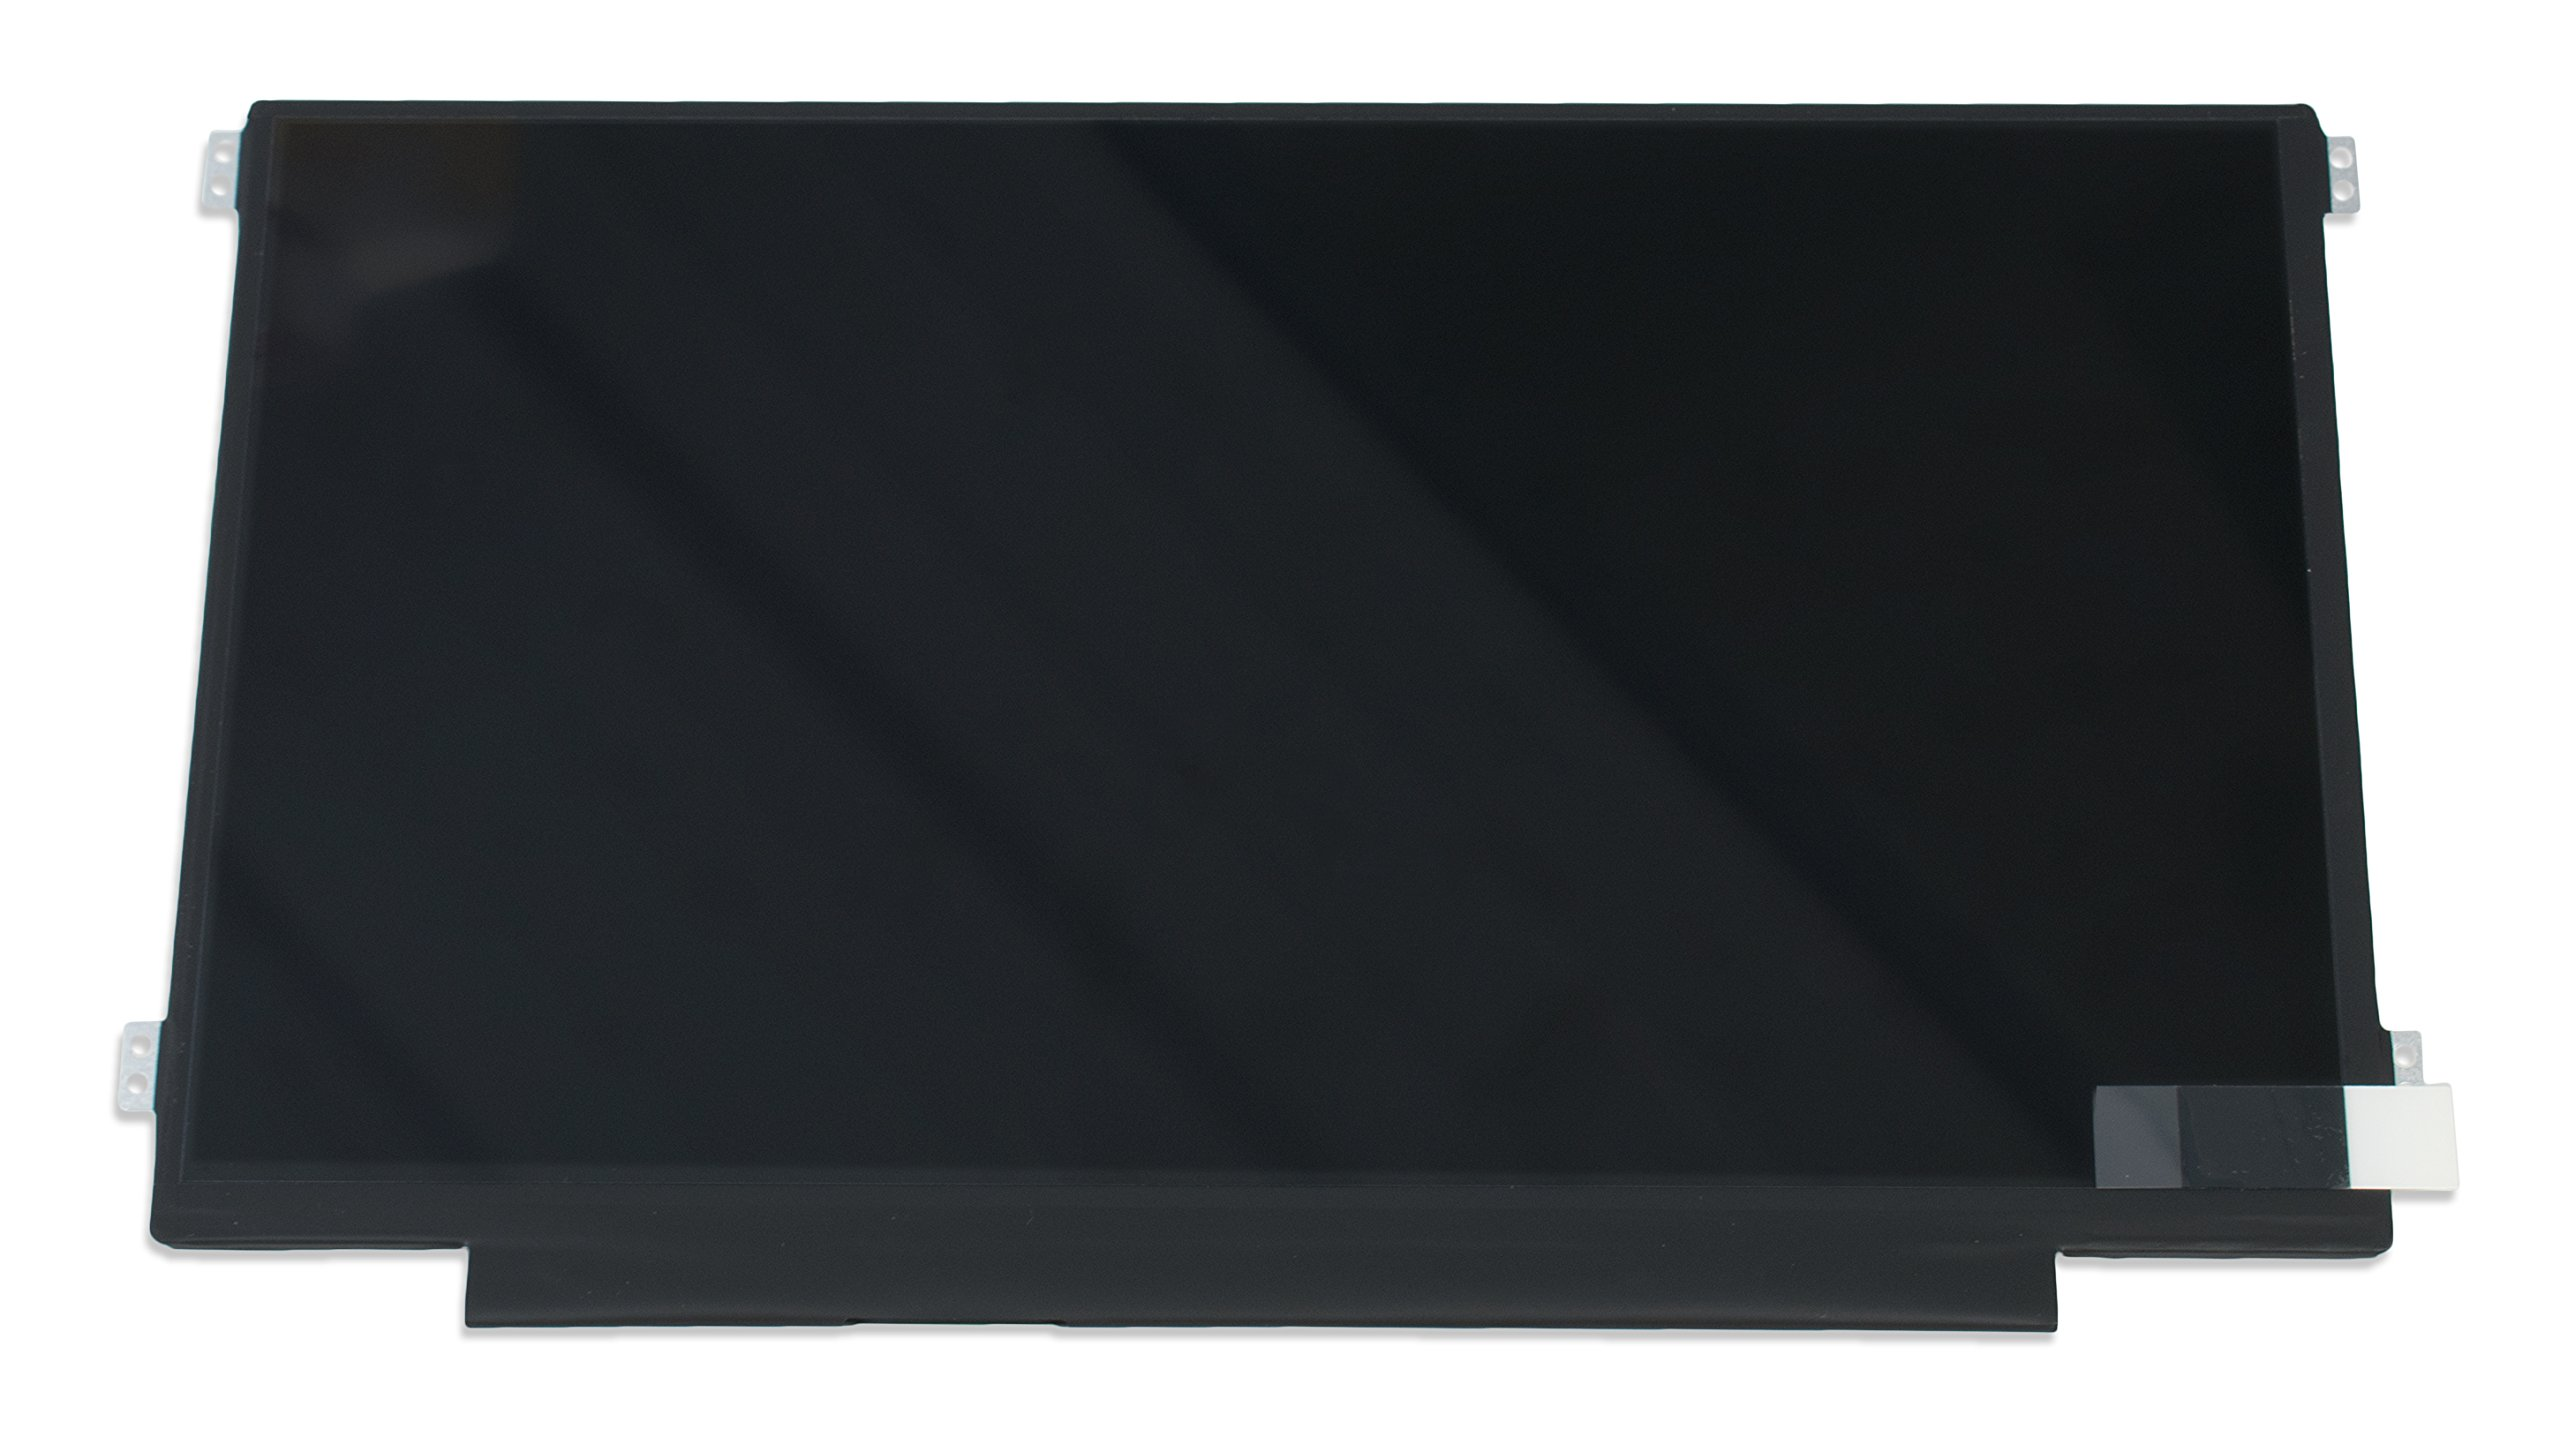 11.5'' WXGA HD 1366 x 768 LED LCD Replacement Screen for Acer C720 Chromebook (TN)